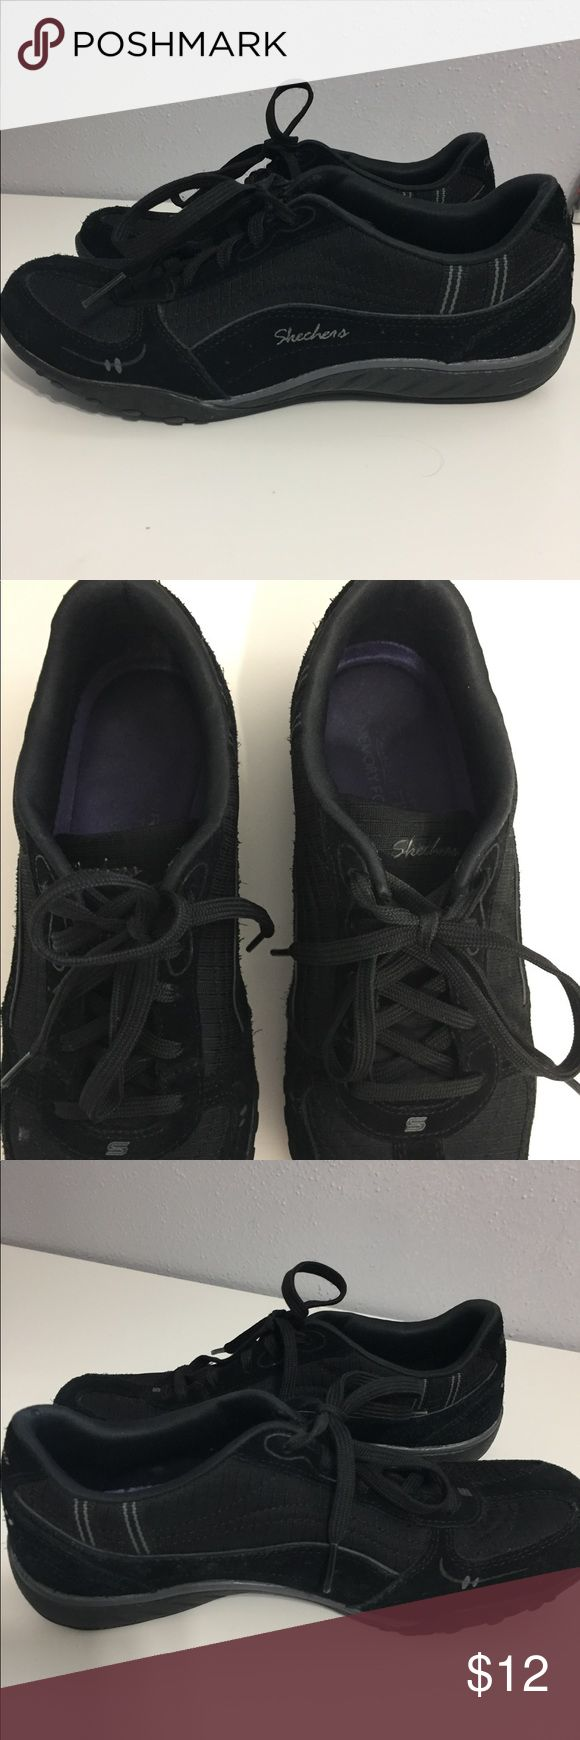 Skechers Memory Foam shoes Shoes are in a good used condition. They are black and come in us size 7. Skechers Shoes Athletic Shoes